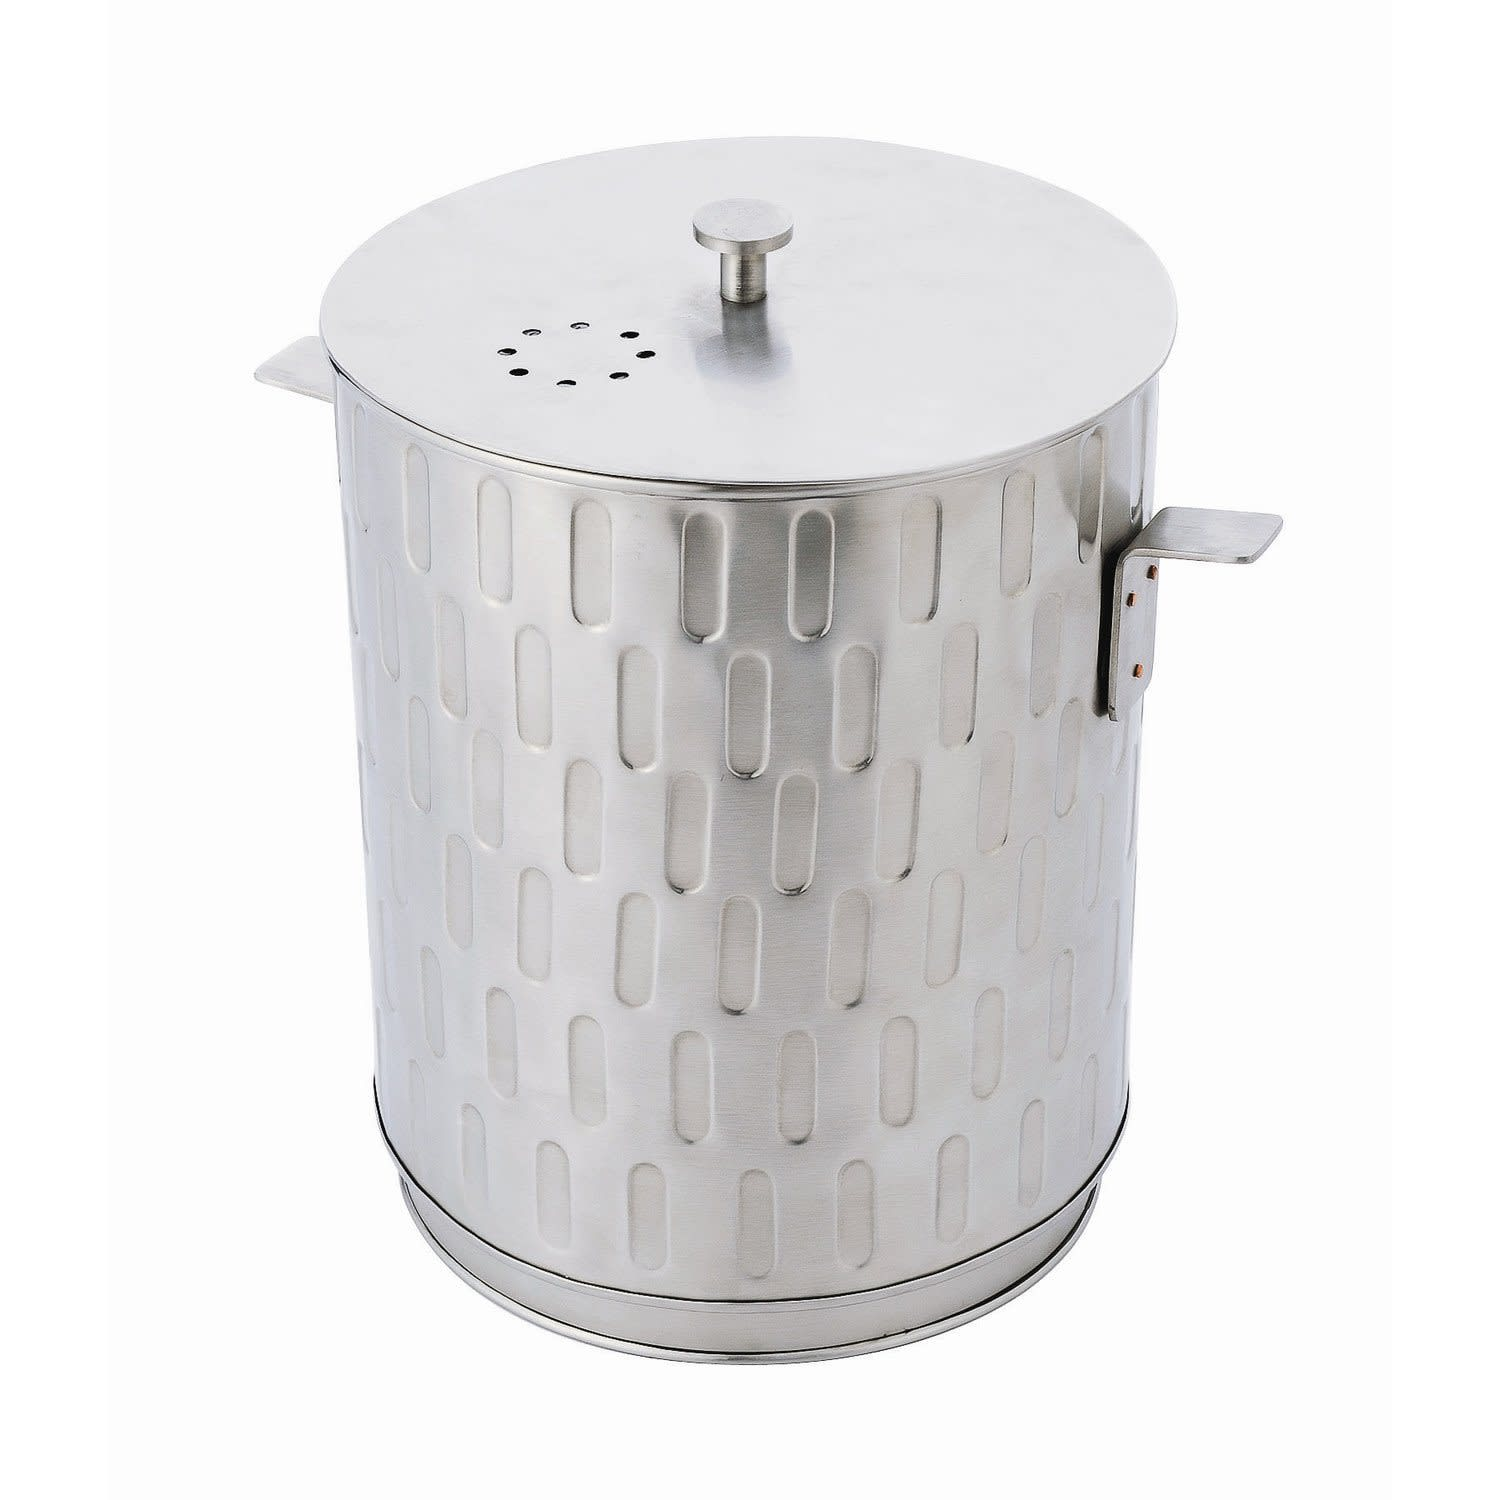 Find Me An Apartment: Help Me Find A Better Compost Bin For My Freezer